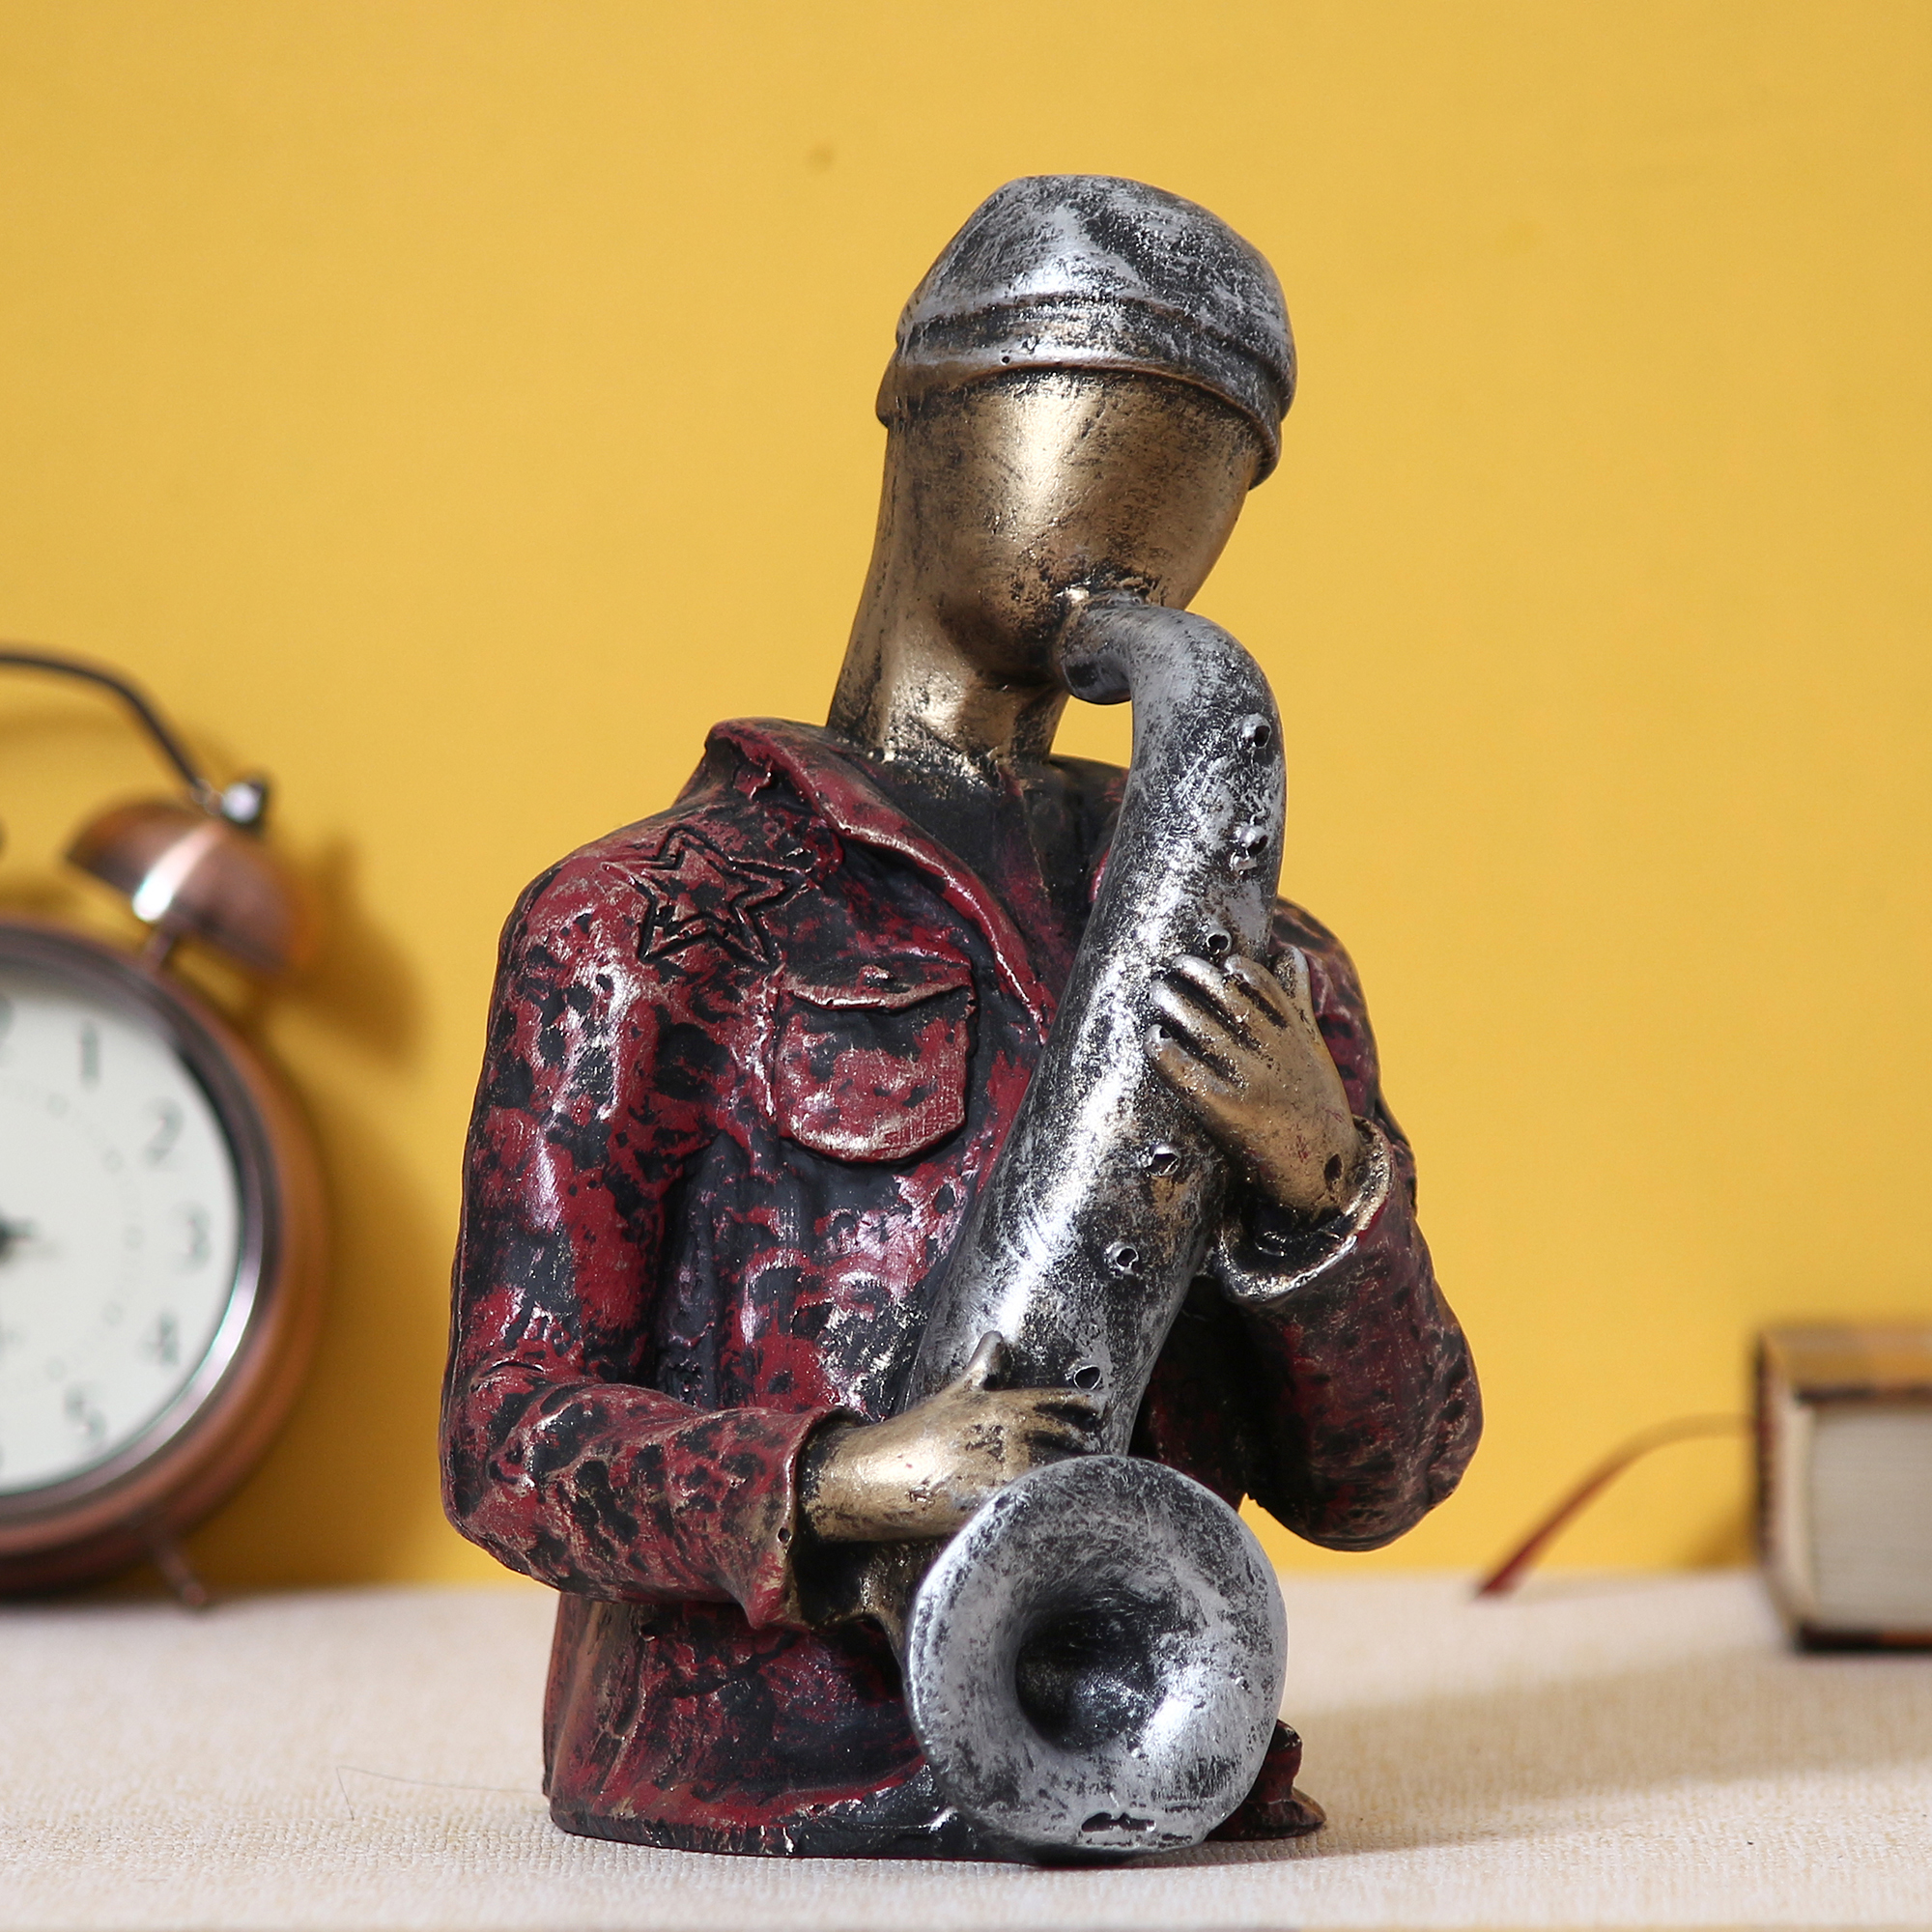 Man with Hat playing Trumpet Decorative Statue Indian Home Decor